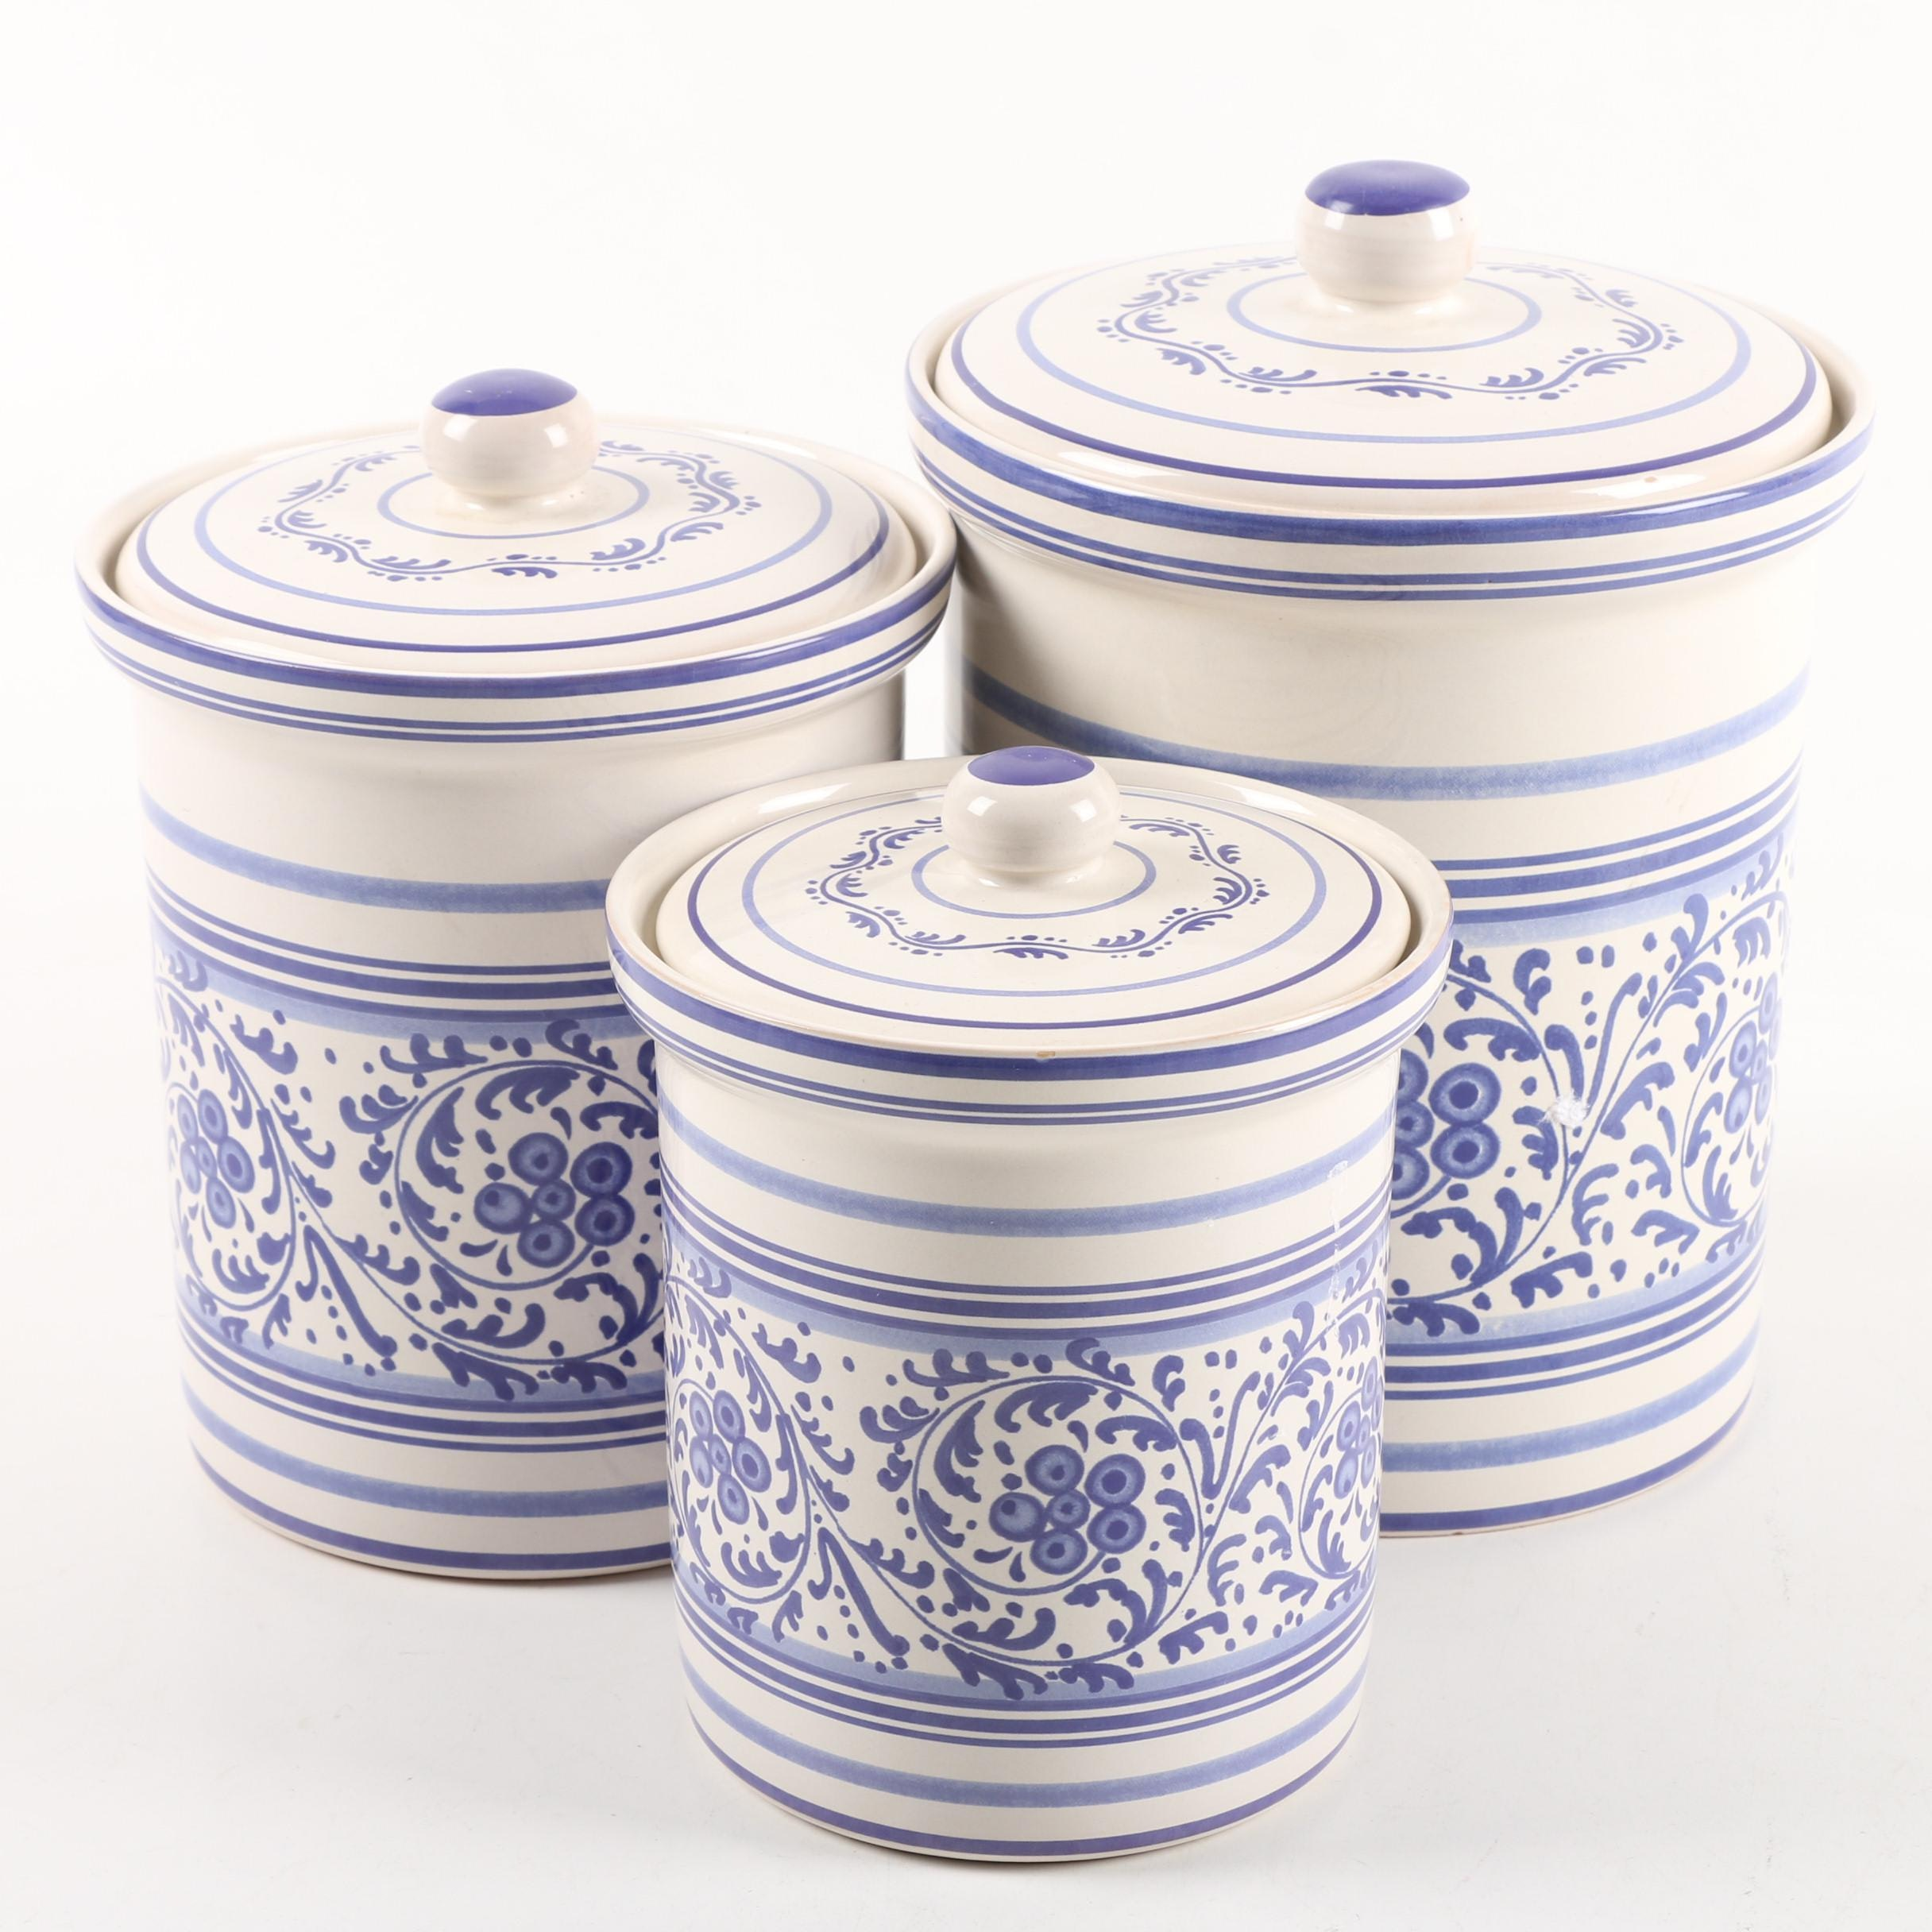 Williams-Sonoma Blue and White Ceramic Cannisters